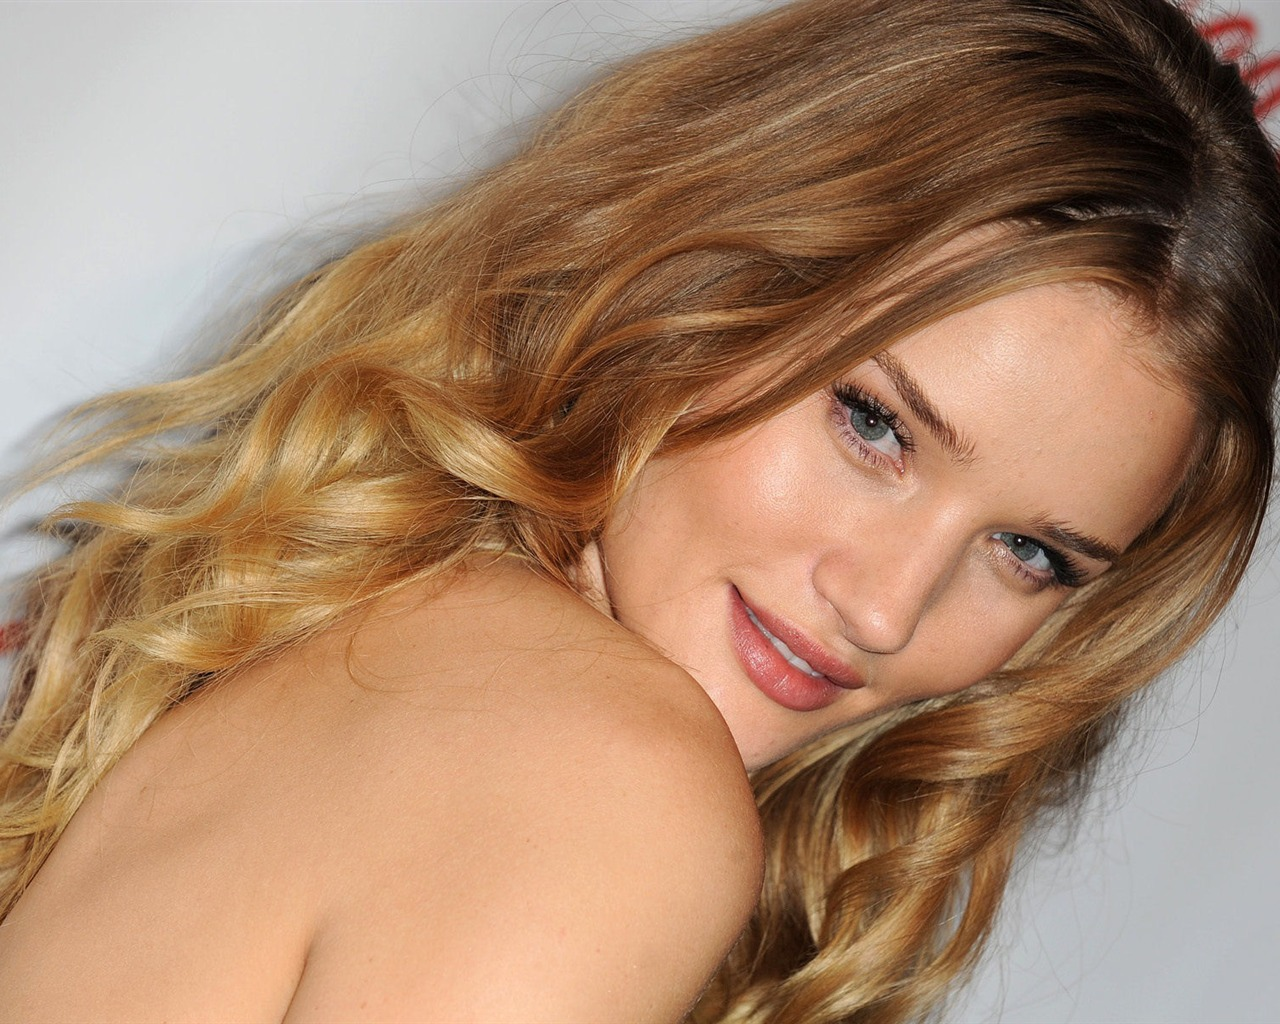 Rosie Huntington Whiteley #011 - 1280x1024 Wallpapers Pictures Photos Images